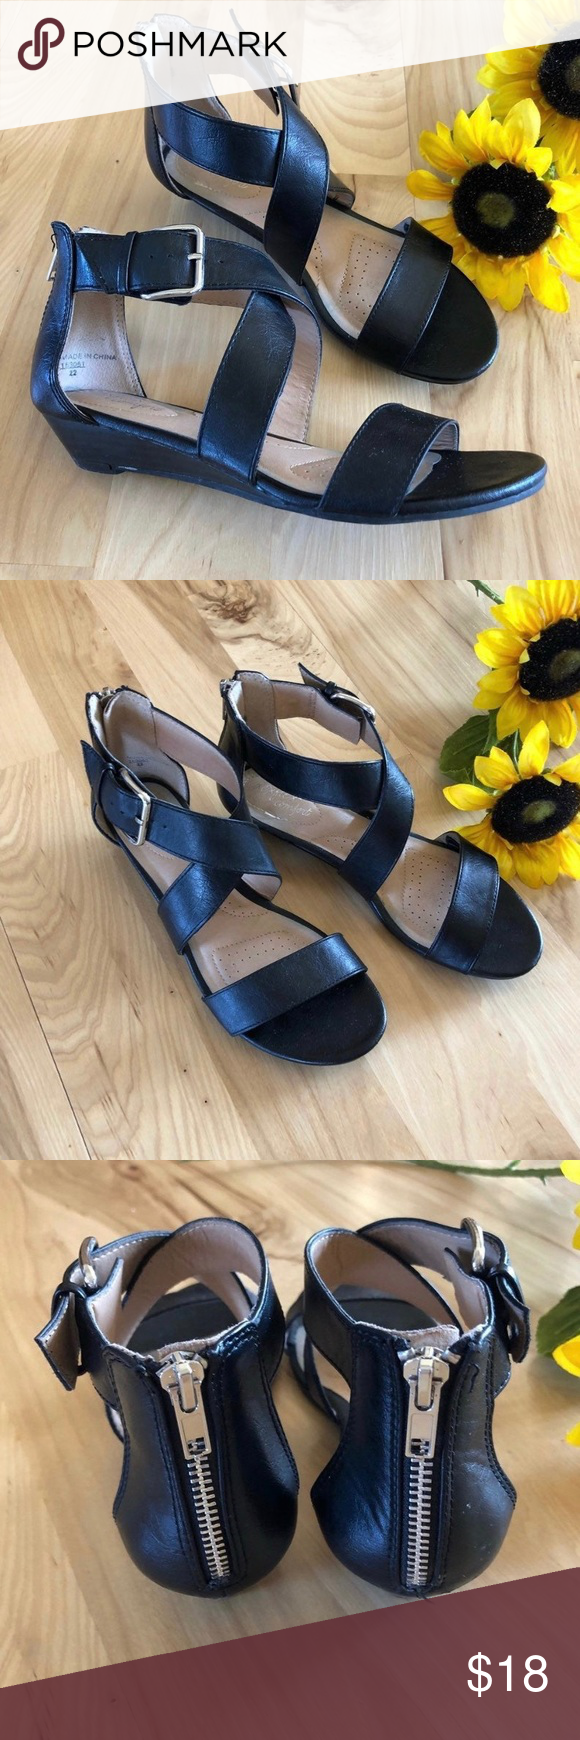 Women's Black Strappy Low Wedge Sandals Women's Black Strappy Low Wedge Sandals   SIZE: 9 CONDITION: Like-new, Pre-owned COLOR: Black  PRODUCT DETAILS: Versatile and comfortable, the Valerie Wedge sandal features a strappy, tumbled upper, ankle zip, low 1 heel, and a rubber outsole.   • Low 1 Heel  • Black Straps   • Ankle Zipper  • Rubber Outsole  Condition: Like new Shoes Wedges #lowwedgesandals